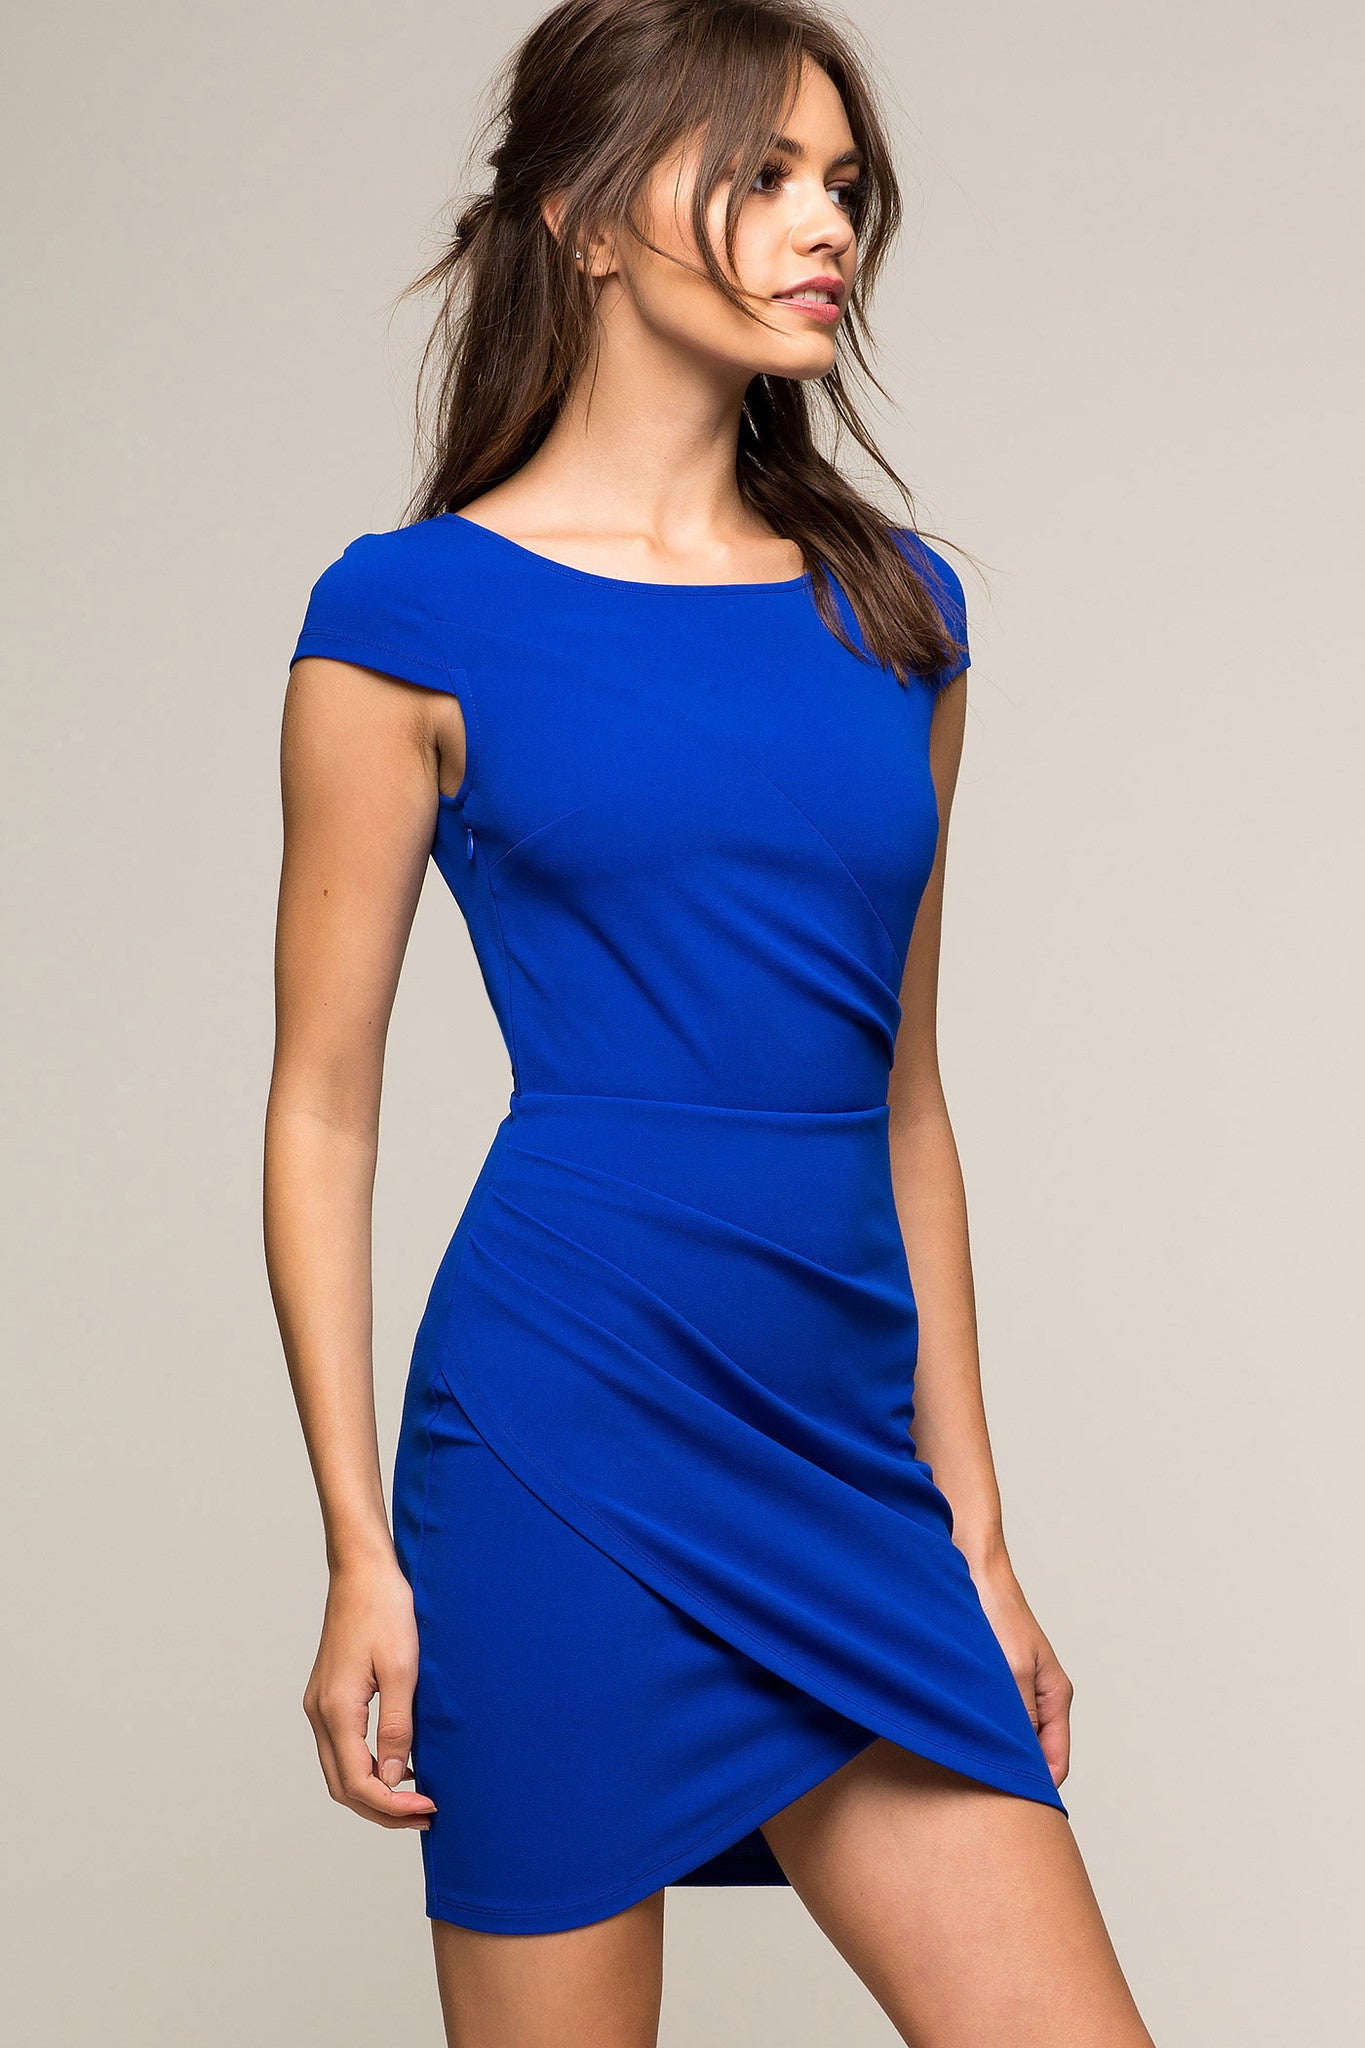 Womens party dresses outfits: Capped sleeve, cobalt blue, asymmetrical hem dress - mini. Front view